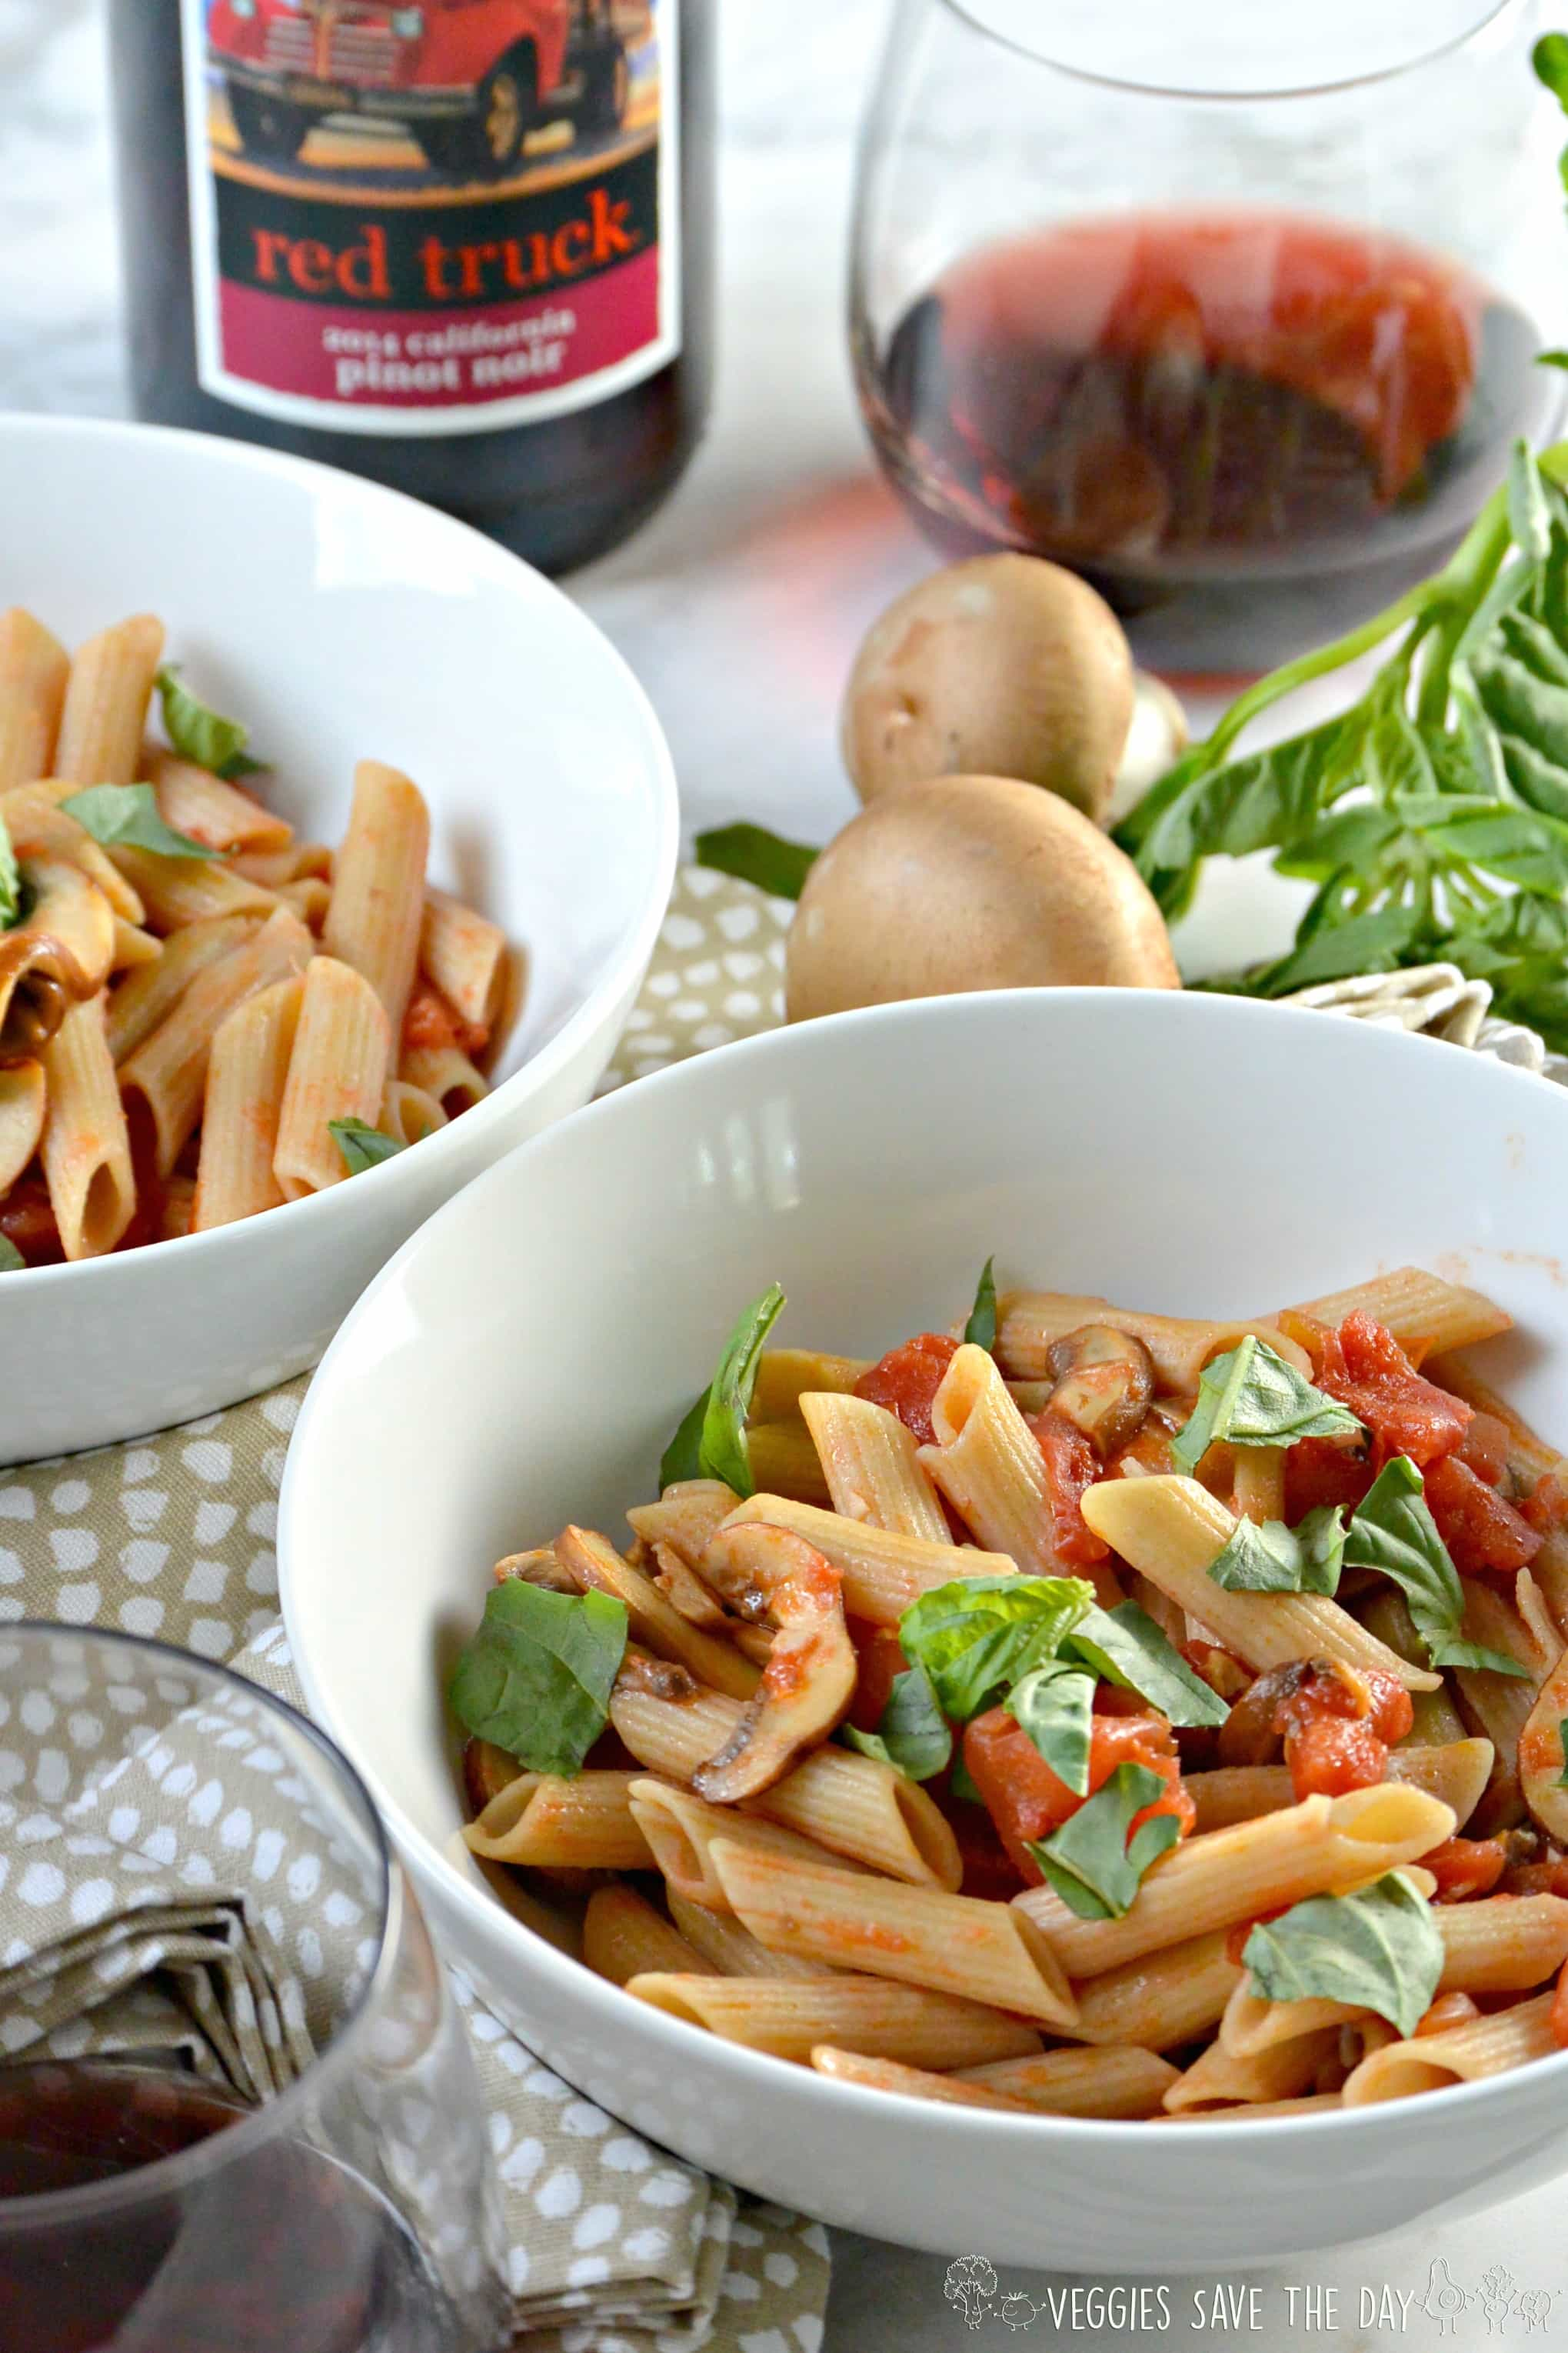 red truck pinot noir wine penne with tomato and basil